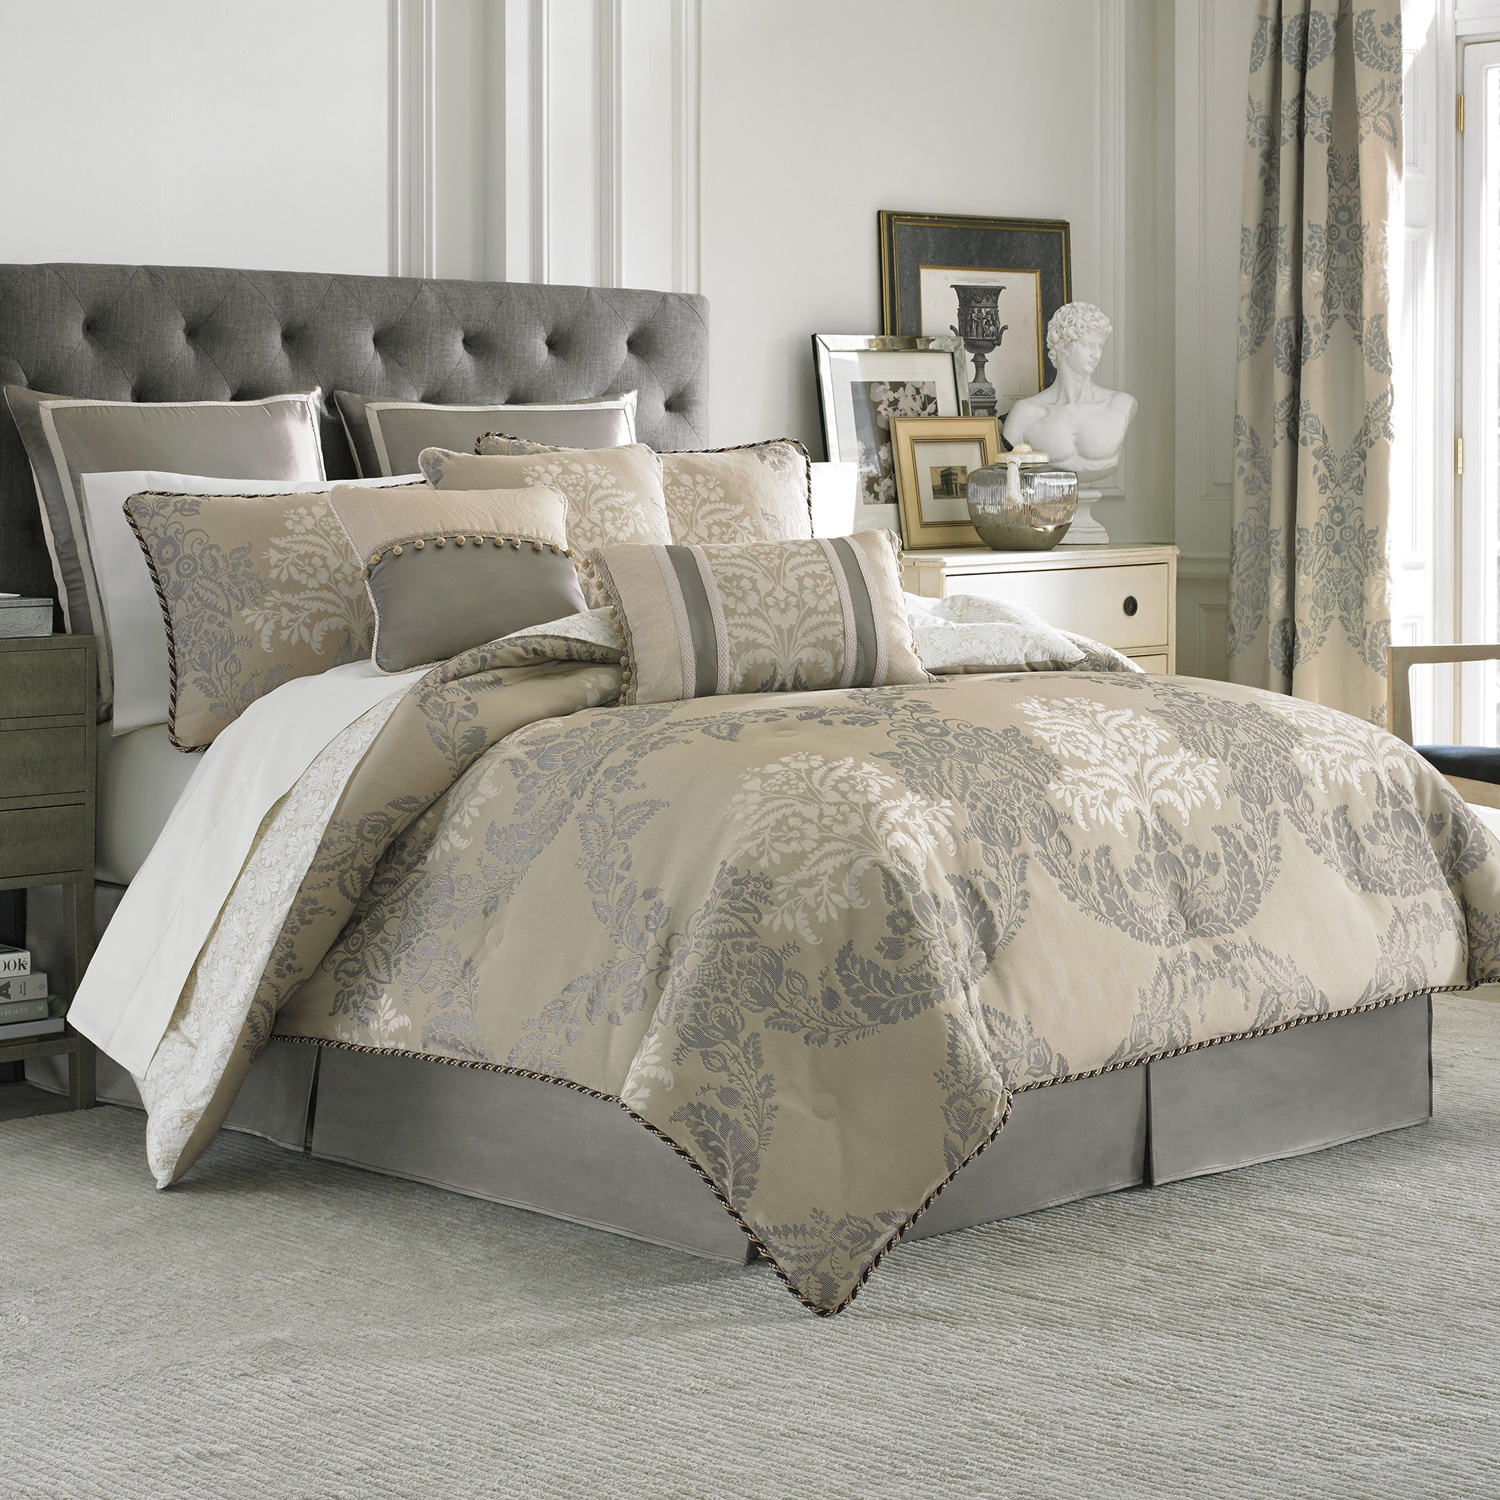 California King Bed Comforter Sets Bringing Refinement In